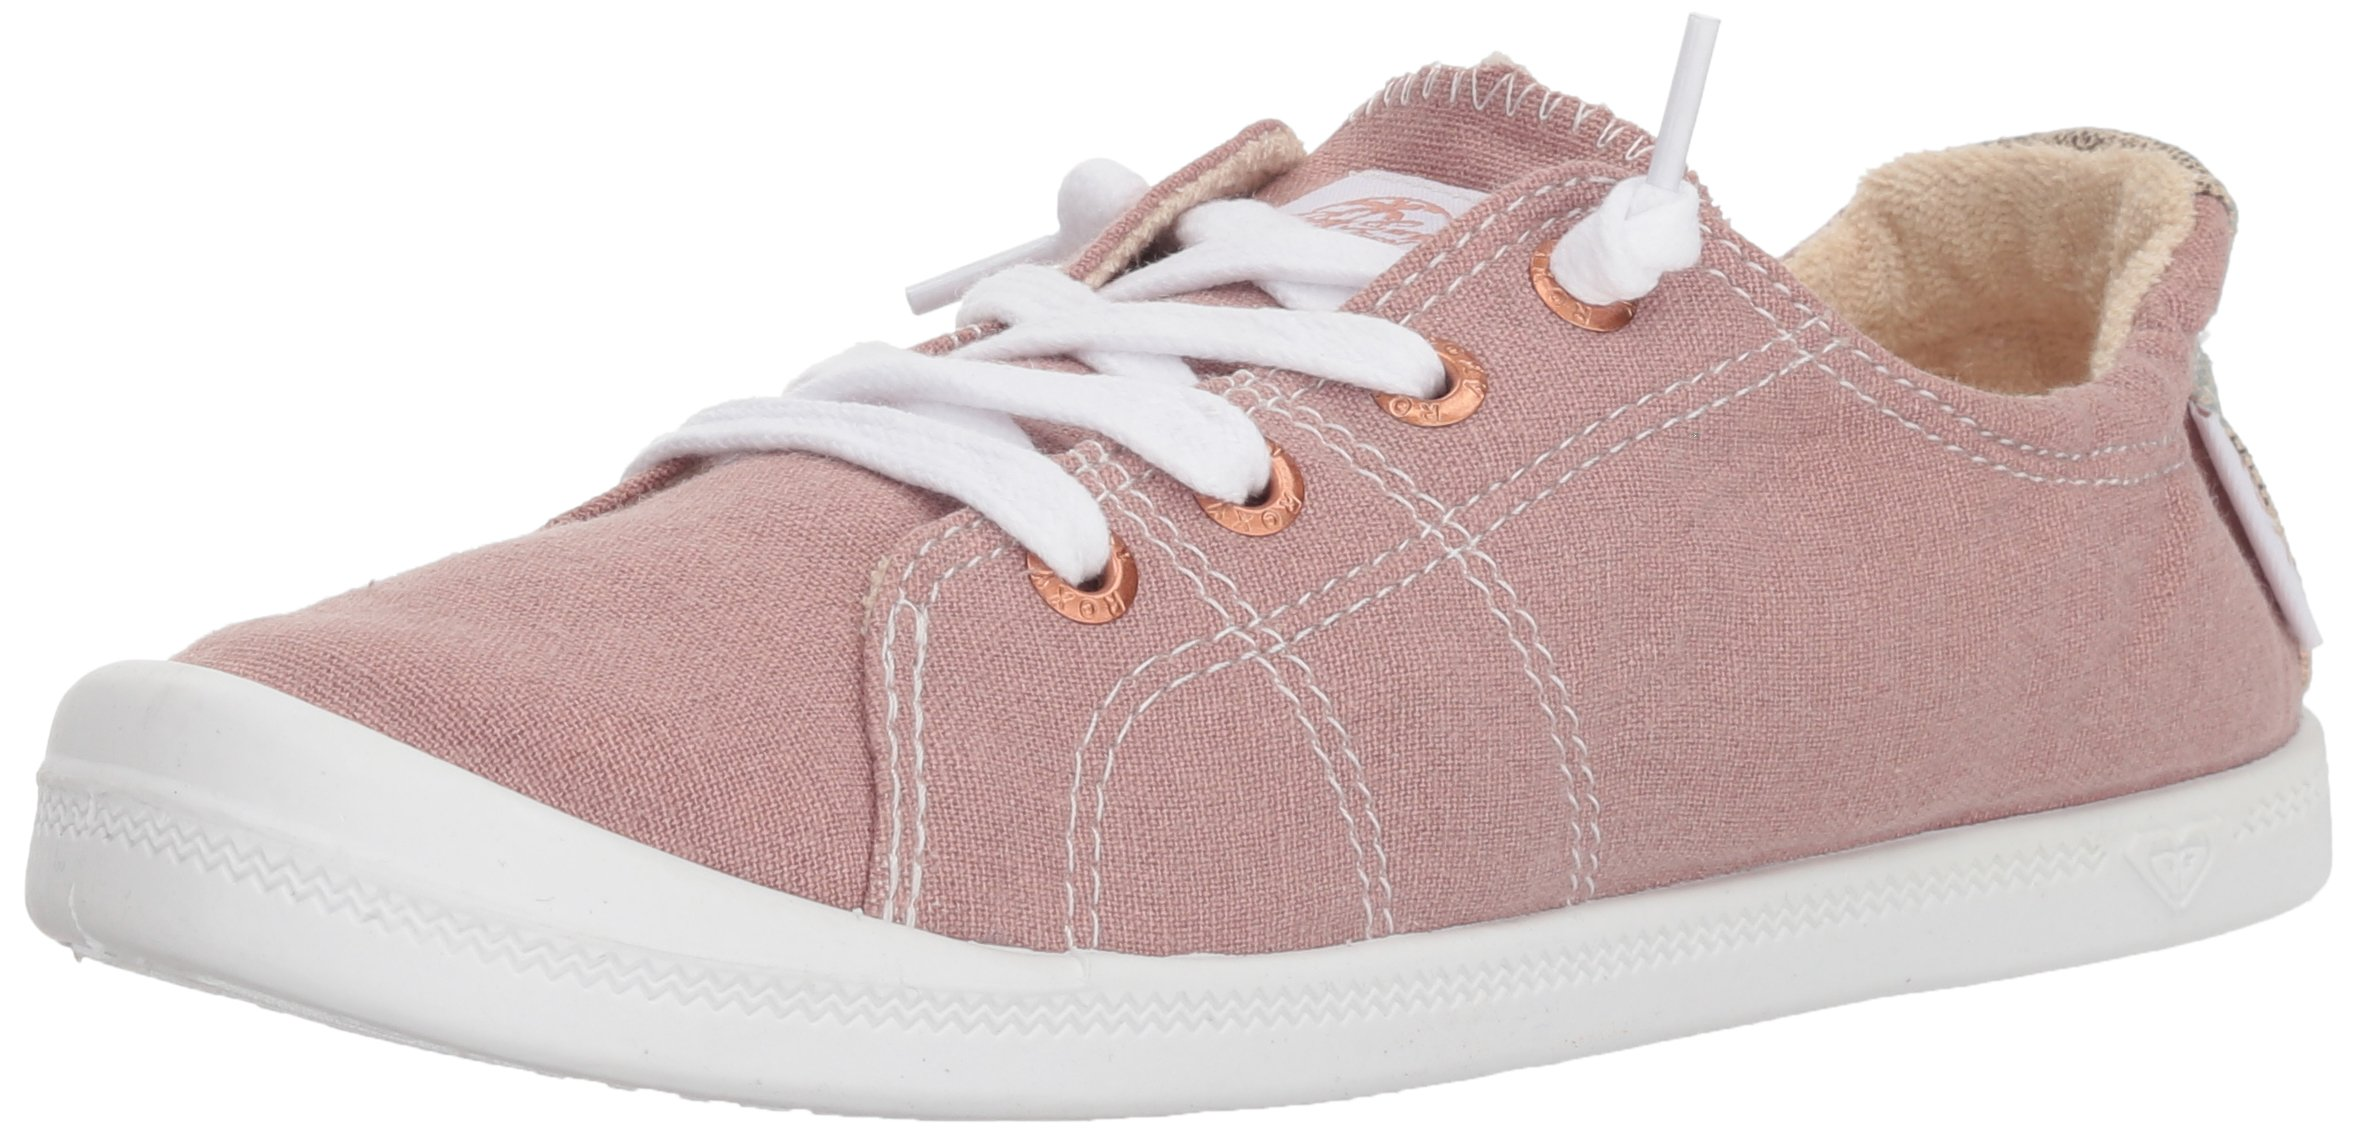 Roxy Women's Bayshore Slip on Shoe Sneaker, Rose 8.5